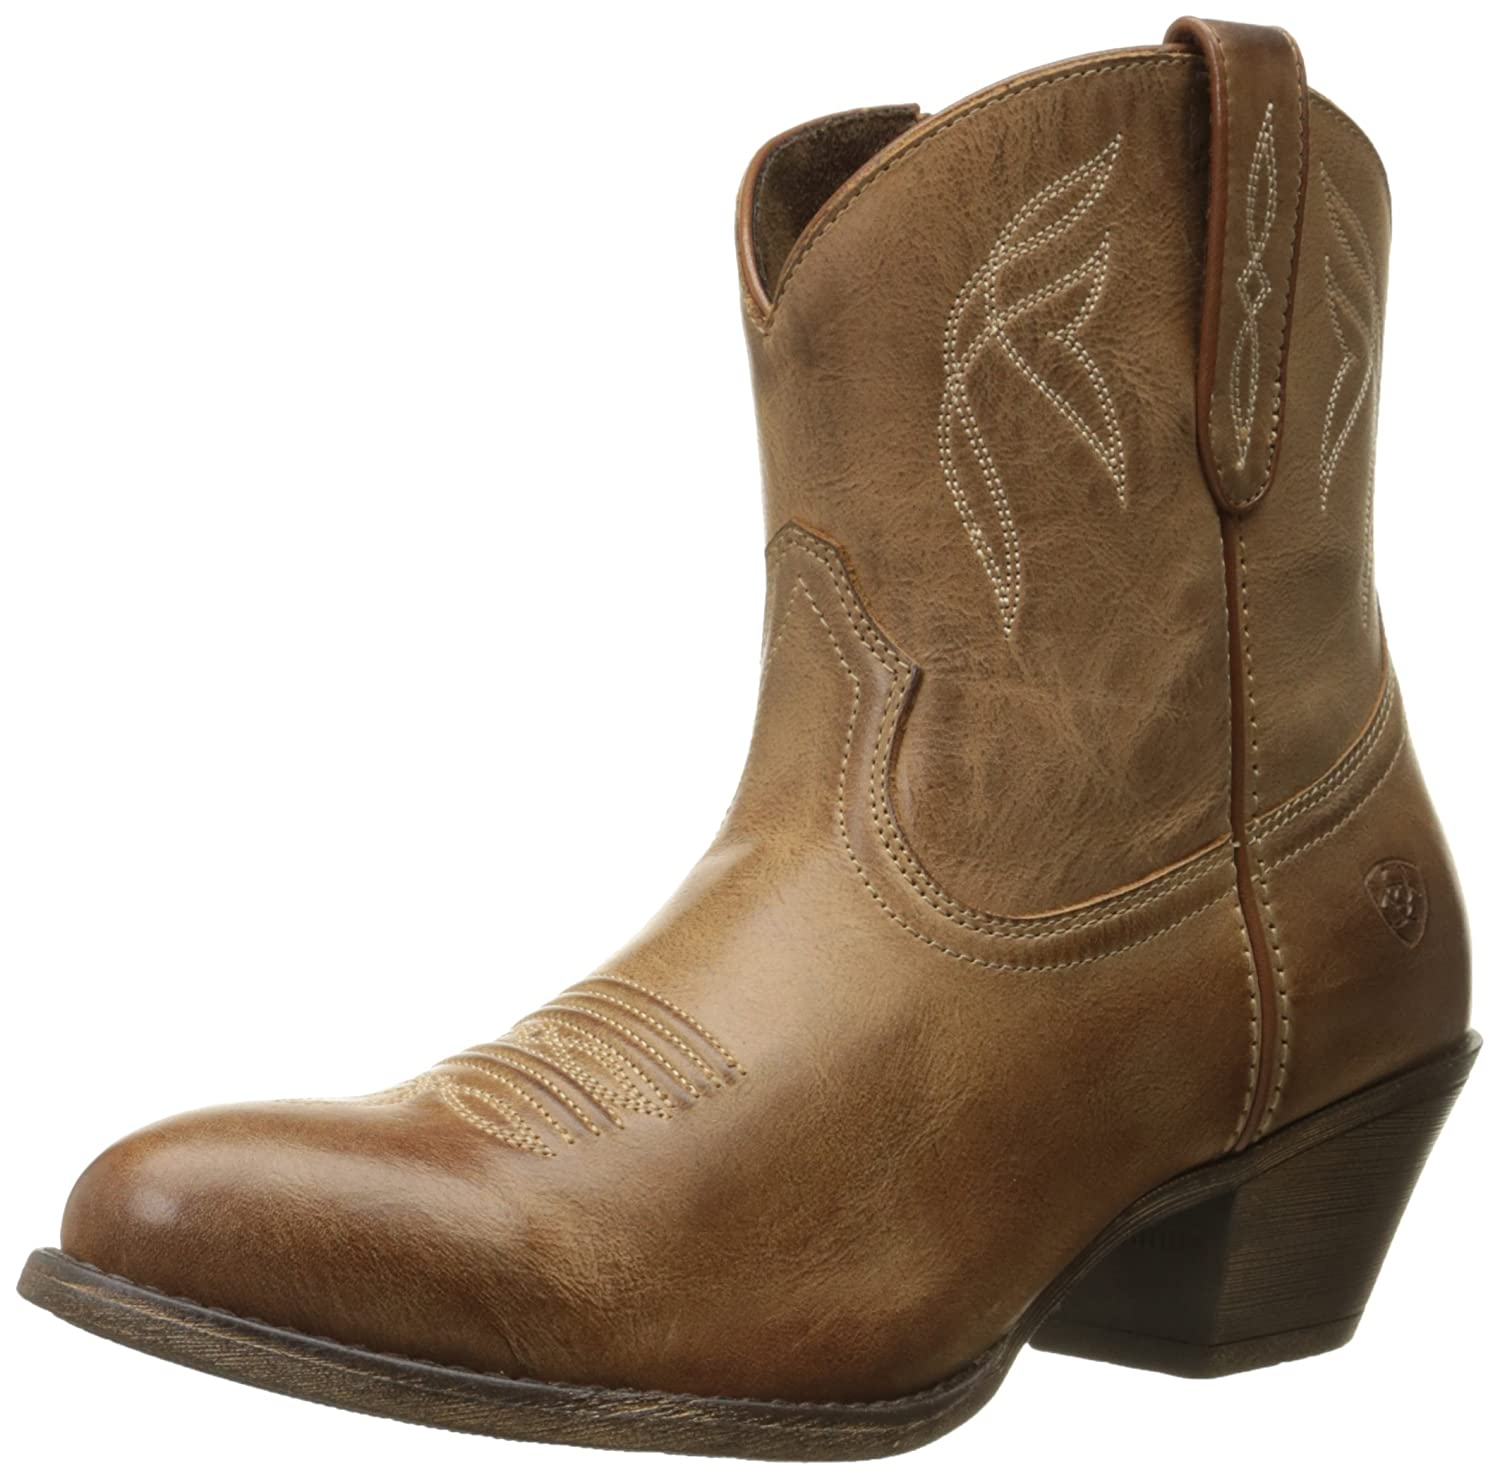 Ariat Women's Darlin Work Boot B013WSCLDK 6.5 B(M) US|Burnt Sugar